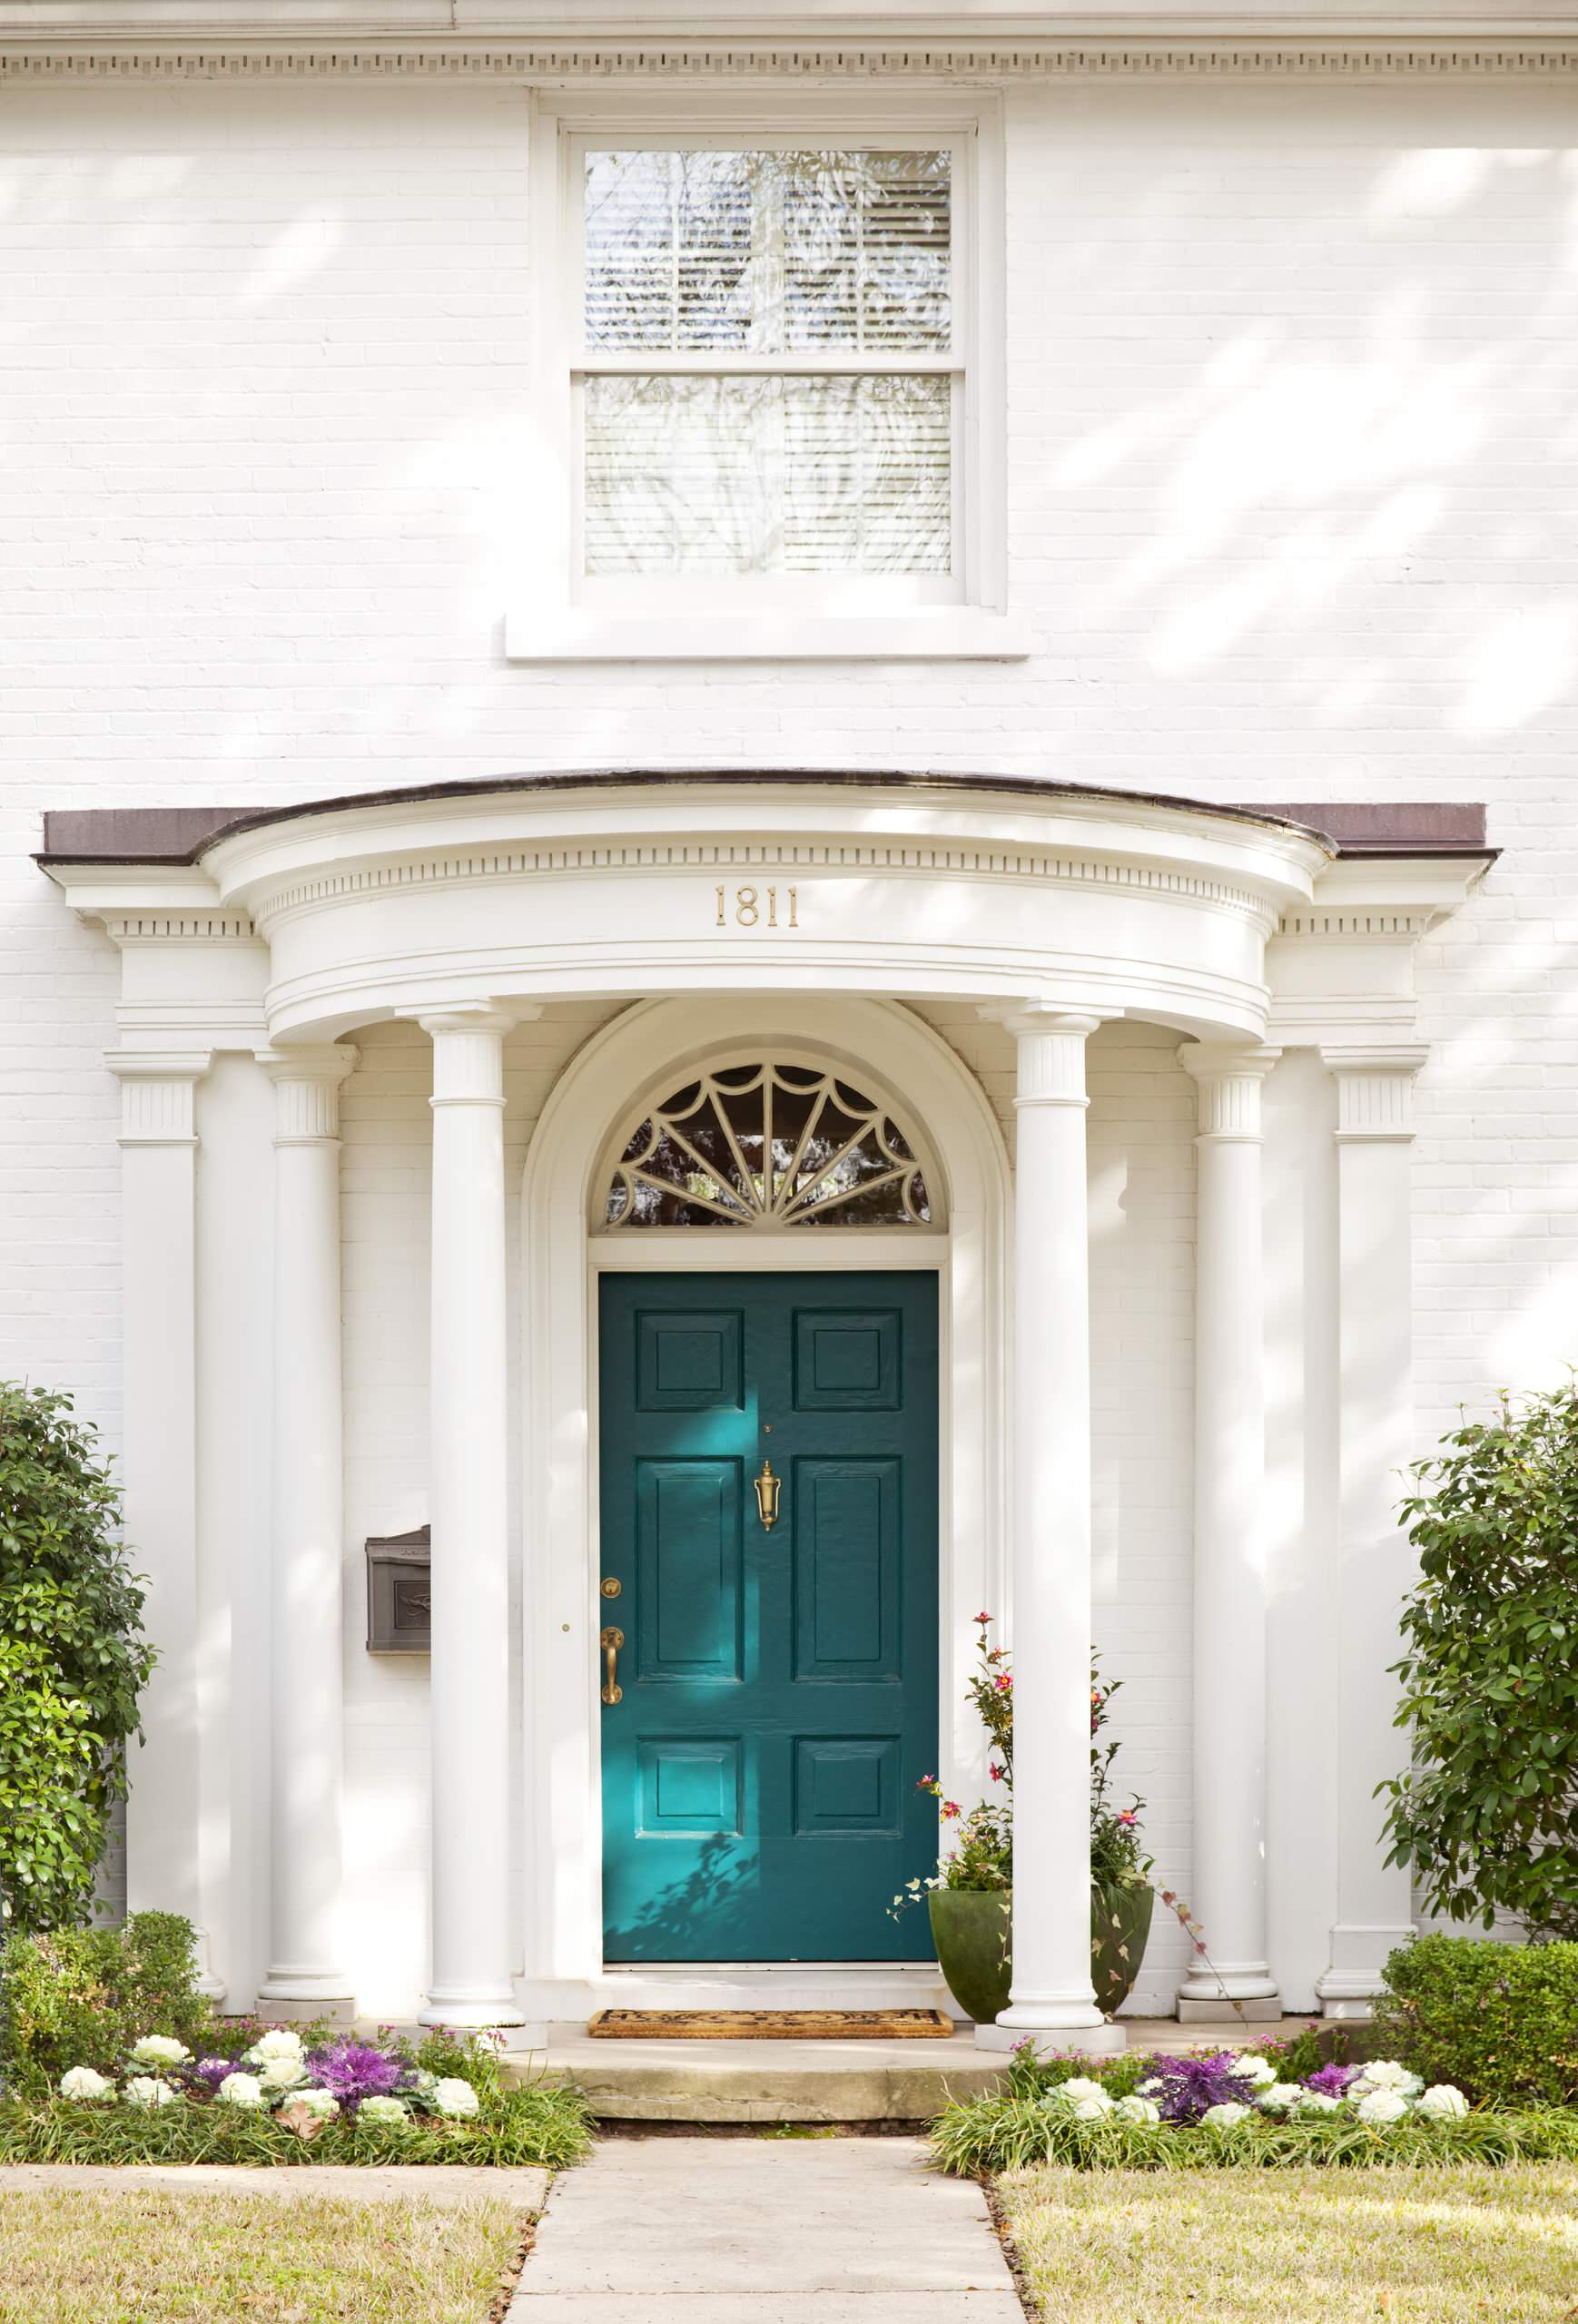 Top 4 most gorgeous home entries and how to recreate these jaw dropping looks at home - Exterior door paint color ideas property ...